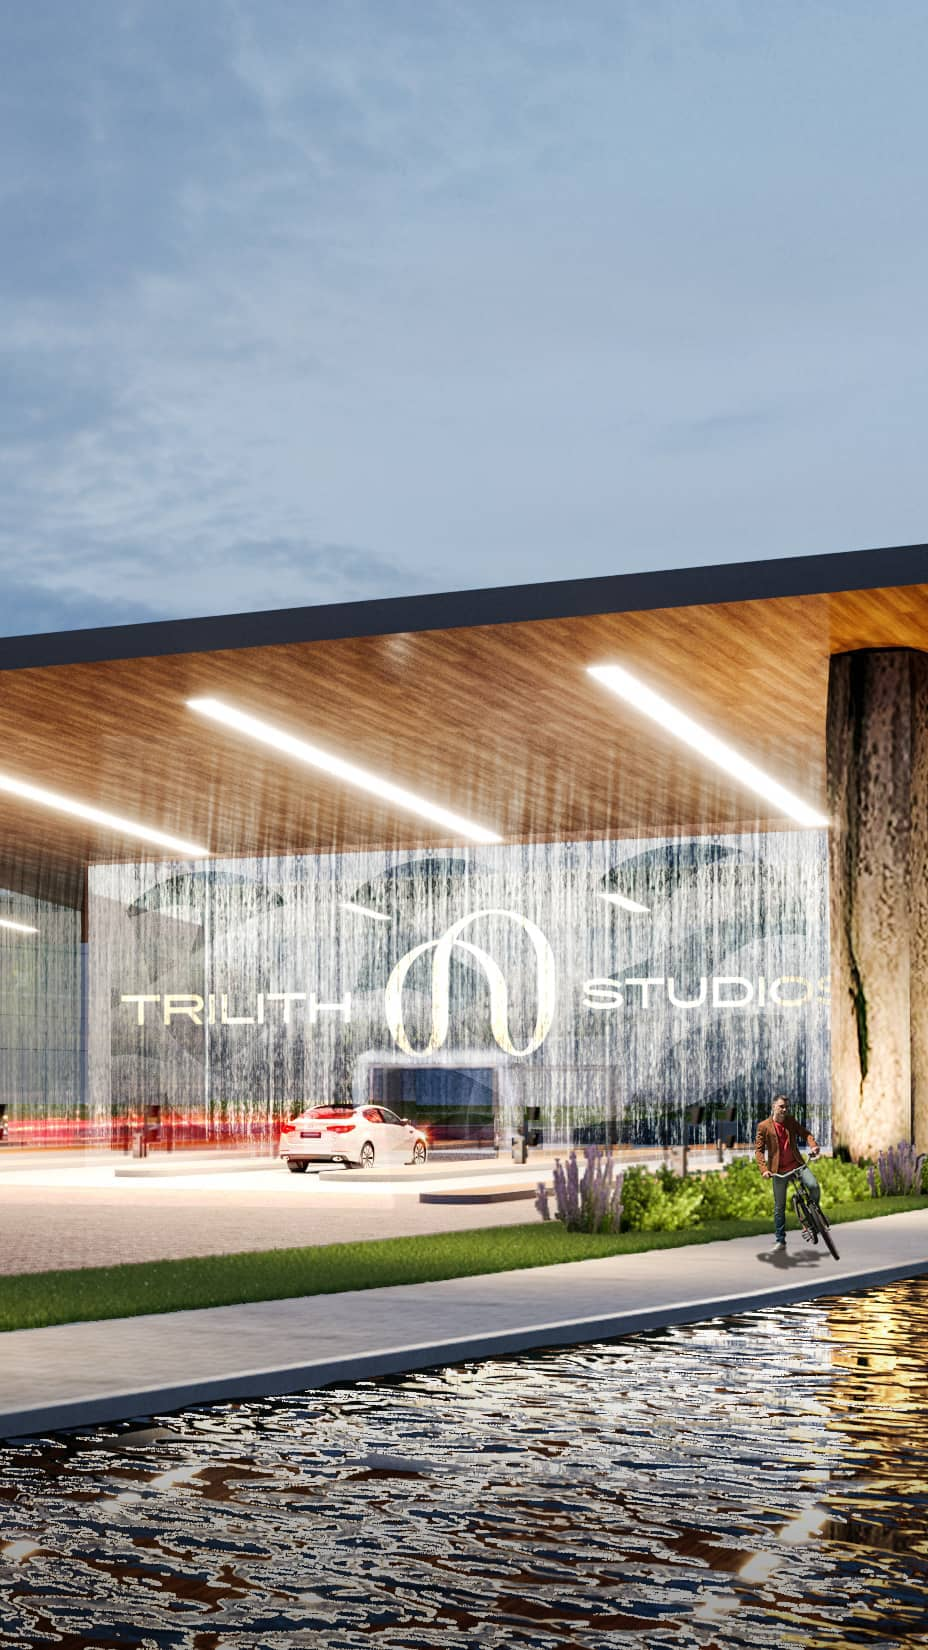 An architectural rendering of the entrance to Trilith Studios featuring the new logo.